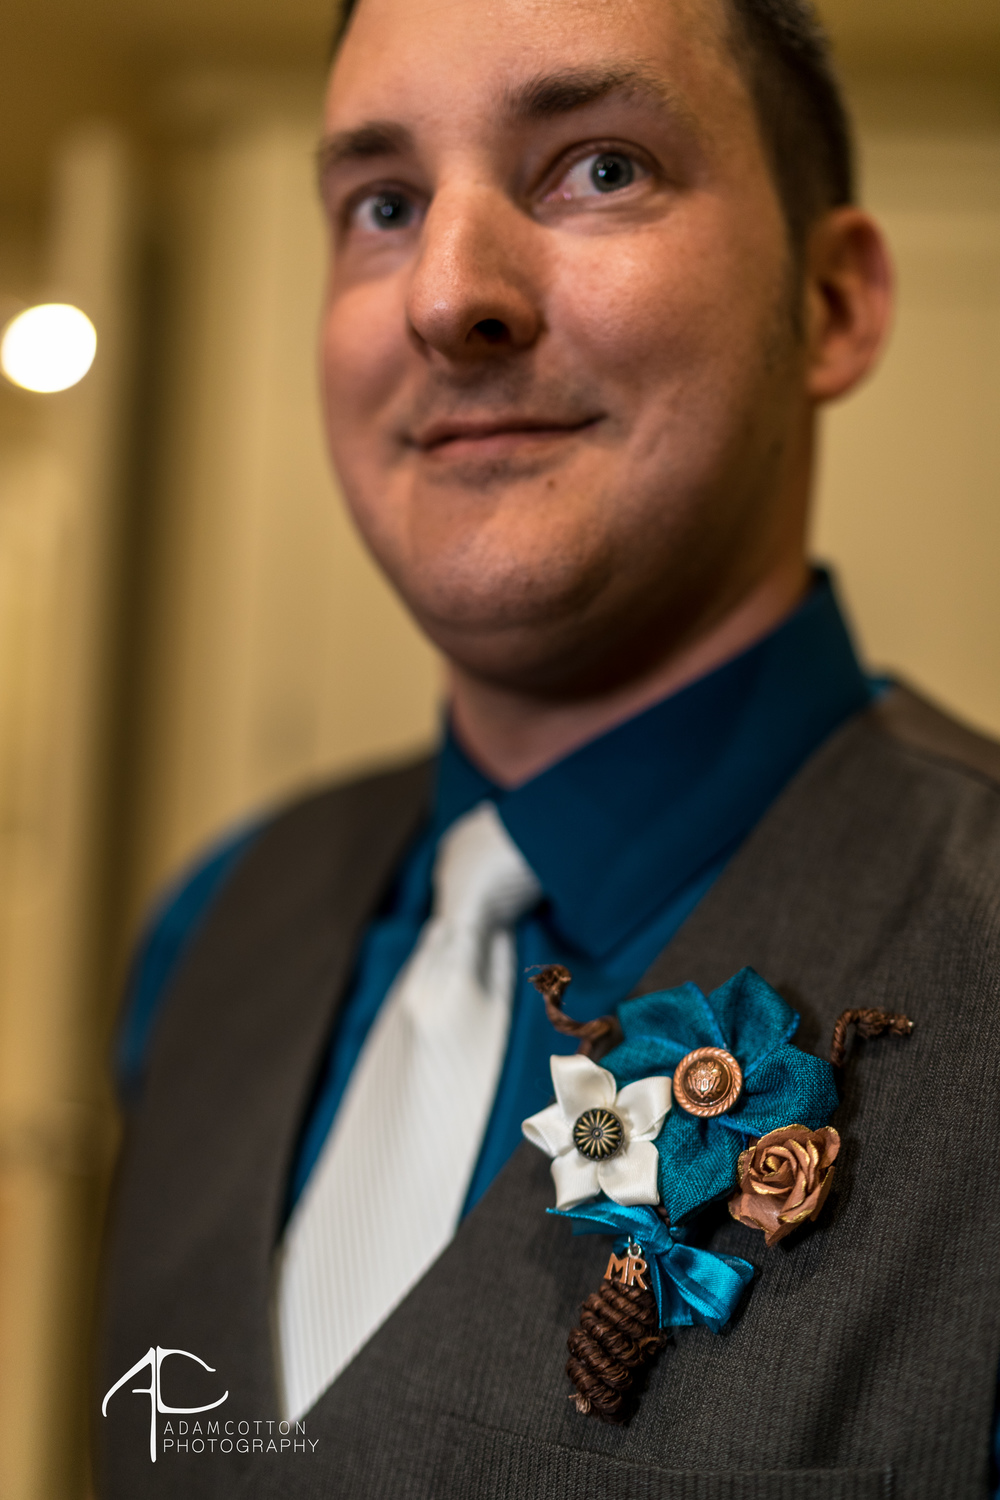 close up image grooms boutonniere white tie tux wedding